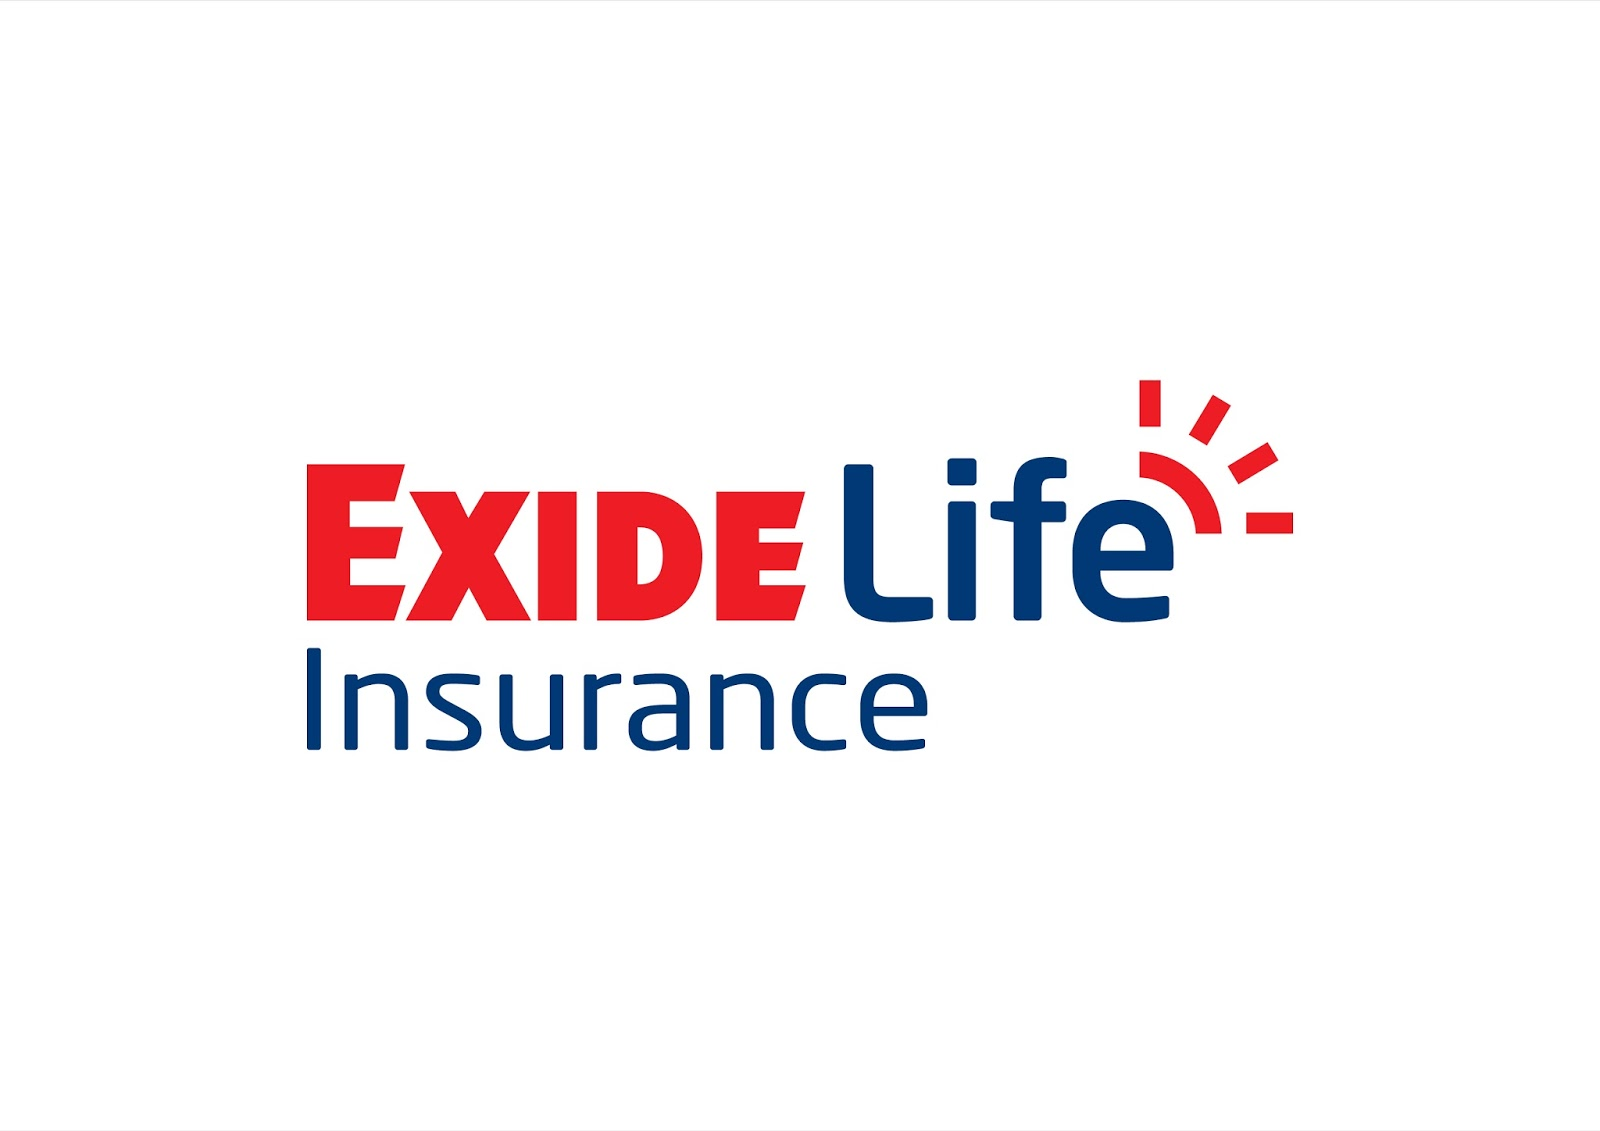 Exide Life Insurance Customer Care Toll Free Number, Contact